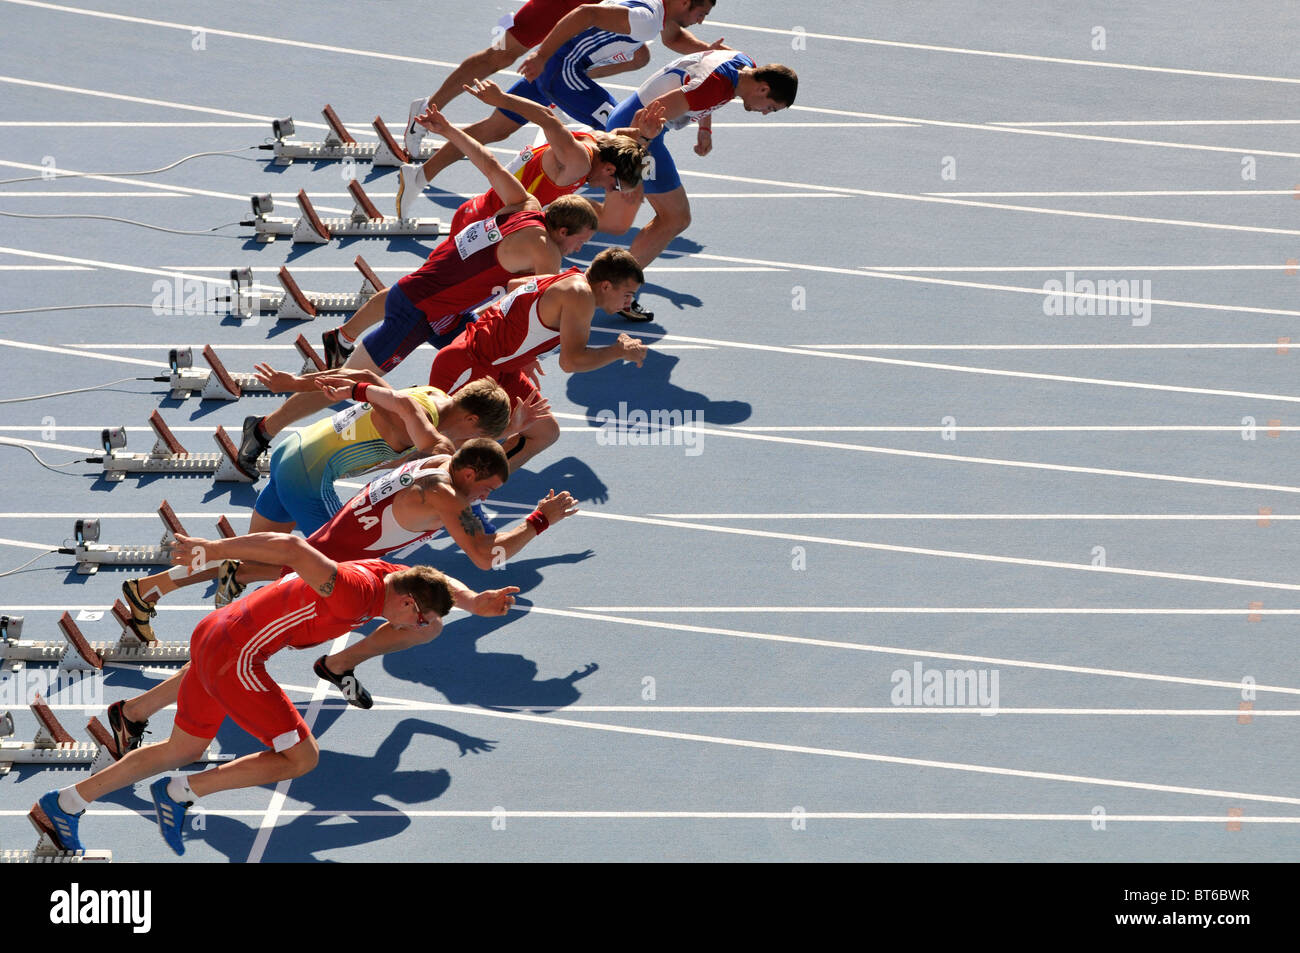 start of male sprinters race during European Athletics Championships 2010 - Stock Image